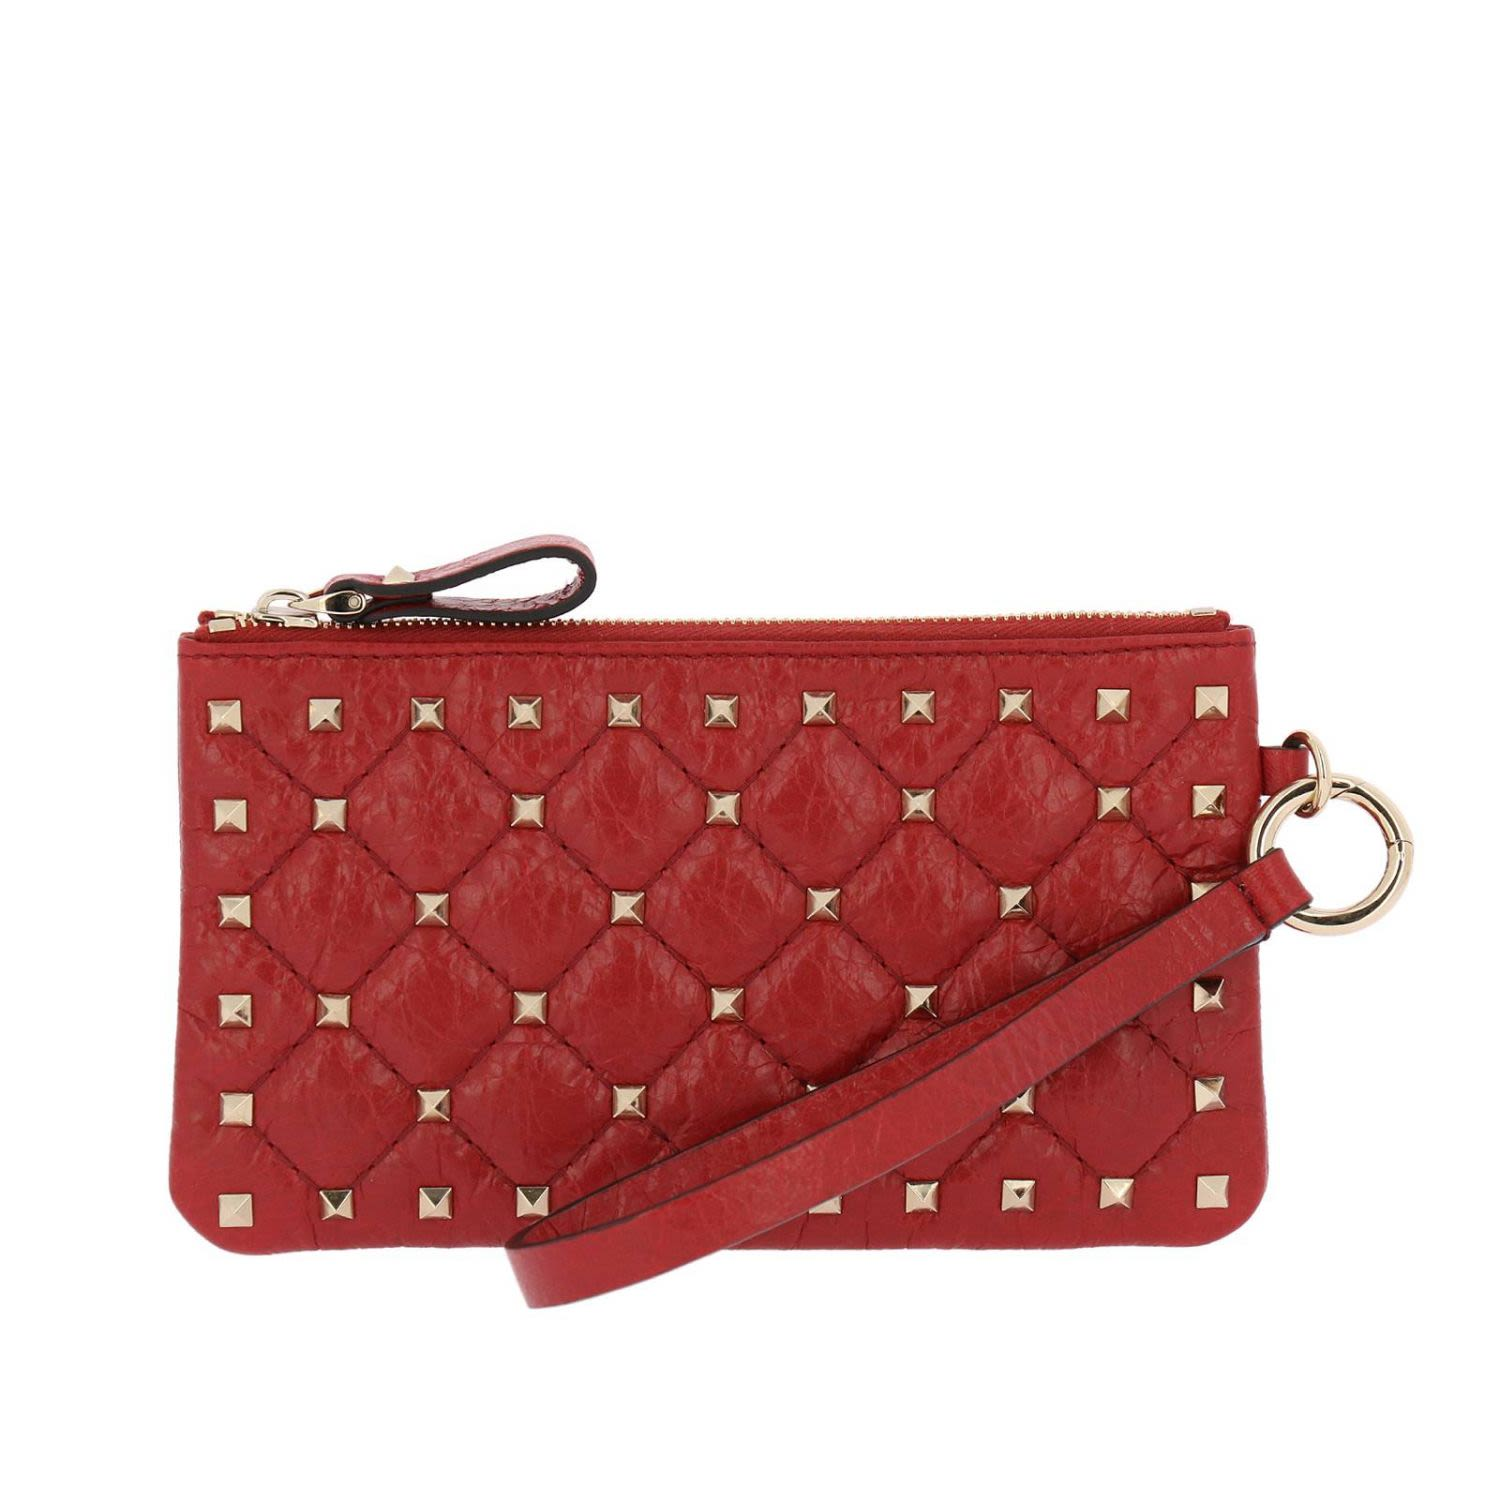 Mini Bag Valentino Rockstud Spike Mini Clutch Bag In Quilted Nappa Leather With Metal Studs